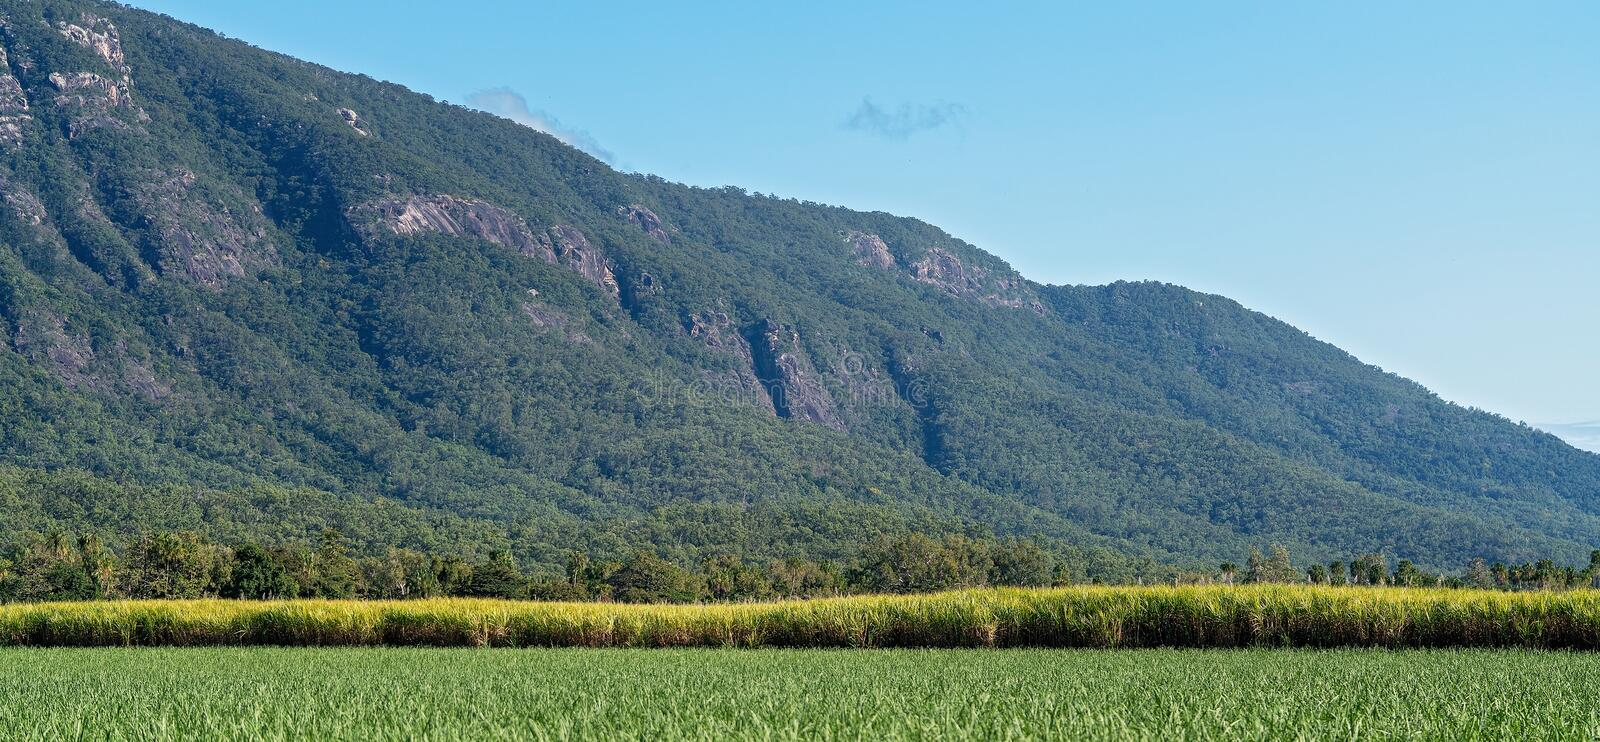 Young And Mature Sugar Cane Fields In Australia. Crops of young and mature sugar cane in the Australian countryside with a mountain backdrop royalty free stock photo